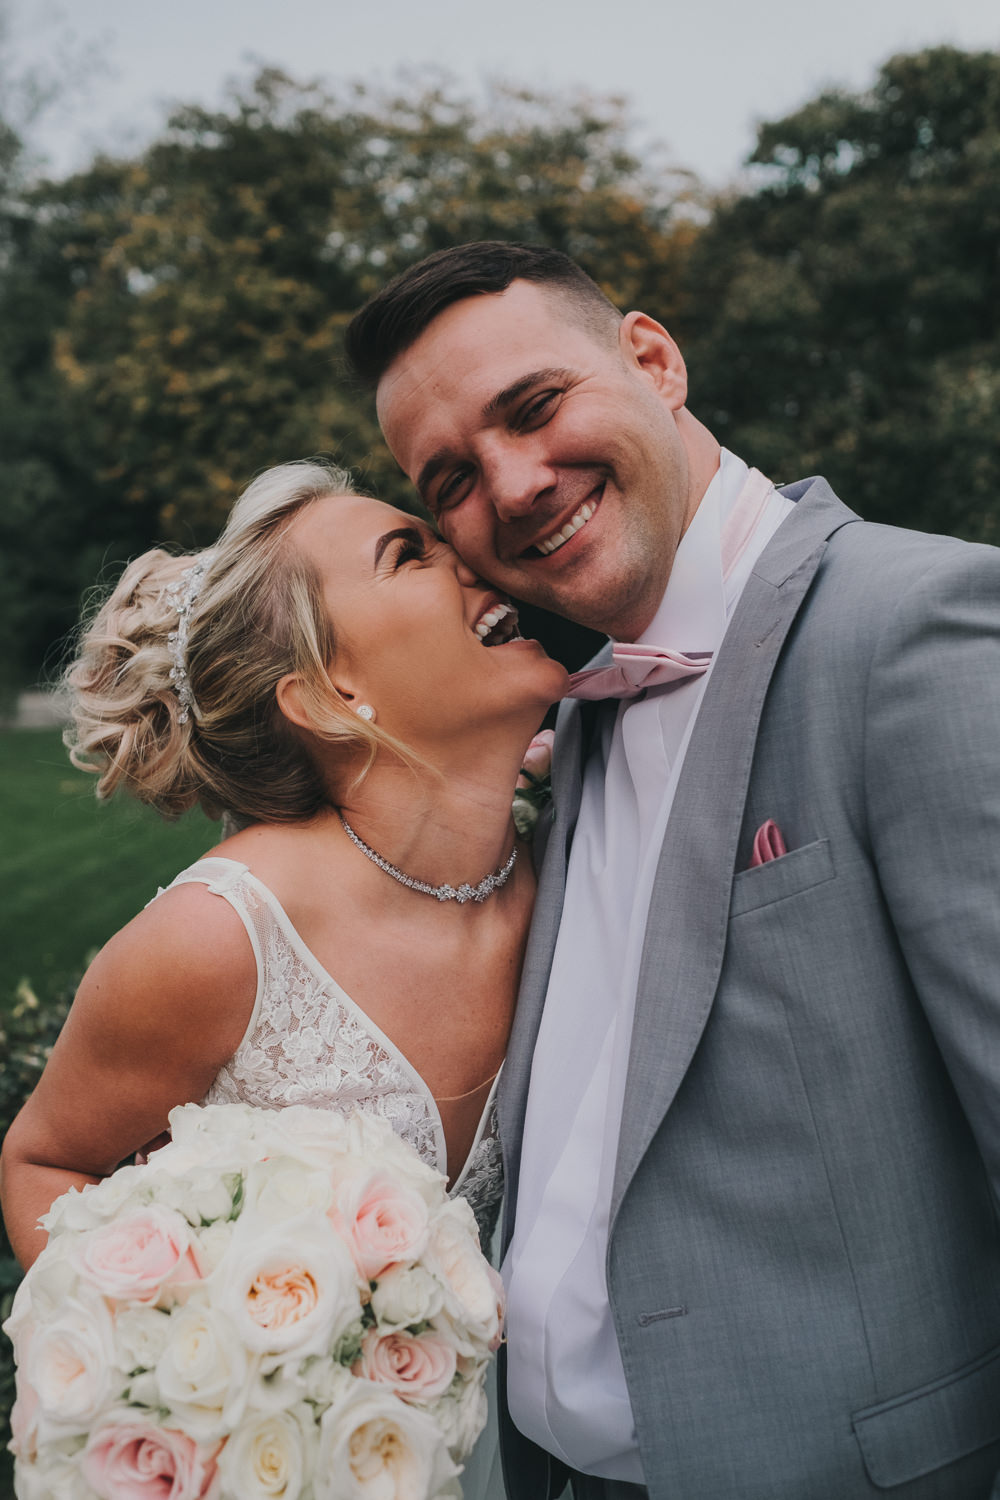 Bride Groom Happy Laughter Classic Traditional Bouquet Bridal Updo Grey Suit | Ashfield House Wedding Kate McCarthy Photography